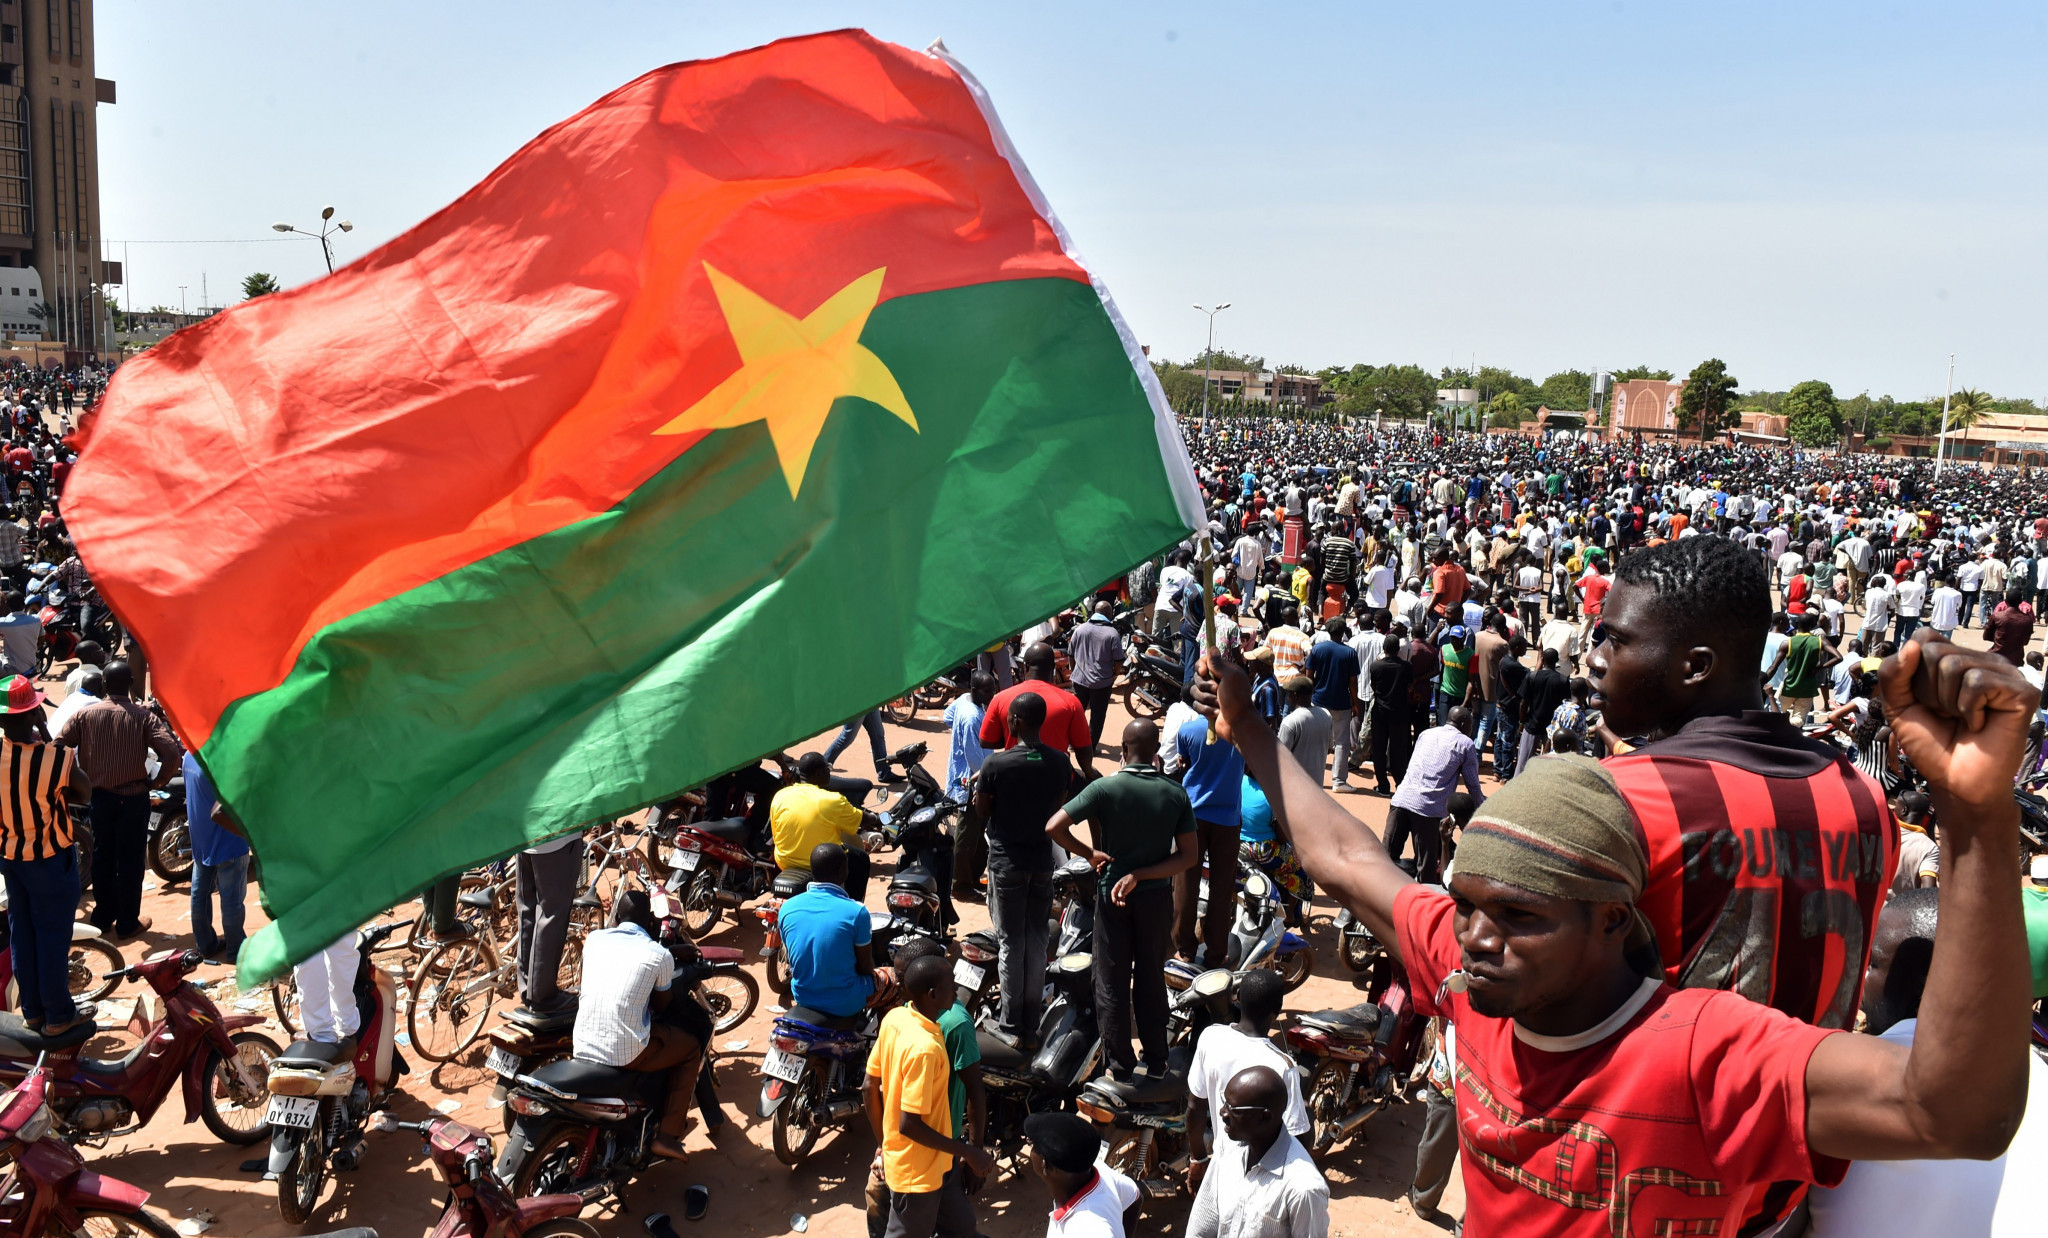 Burkina Faso interested in hosting 2027 African Games